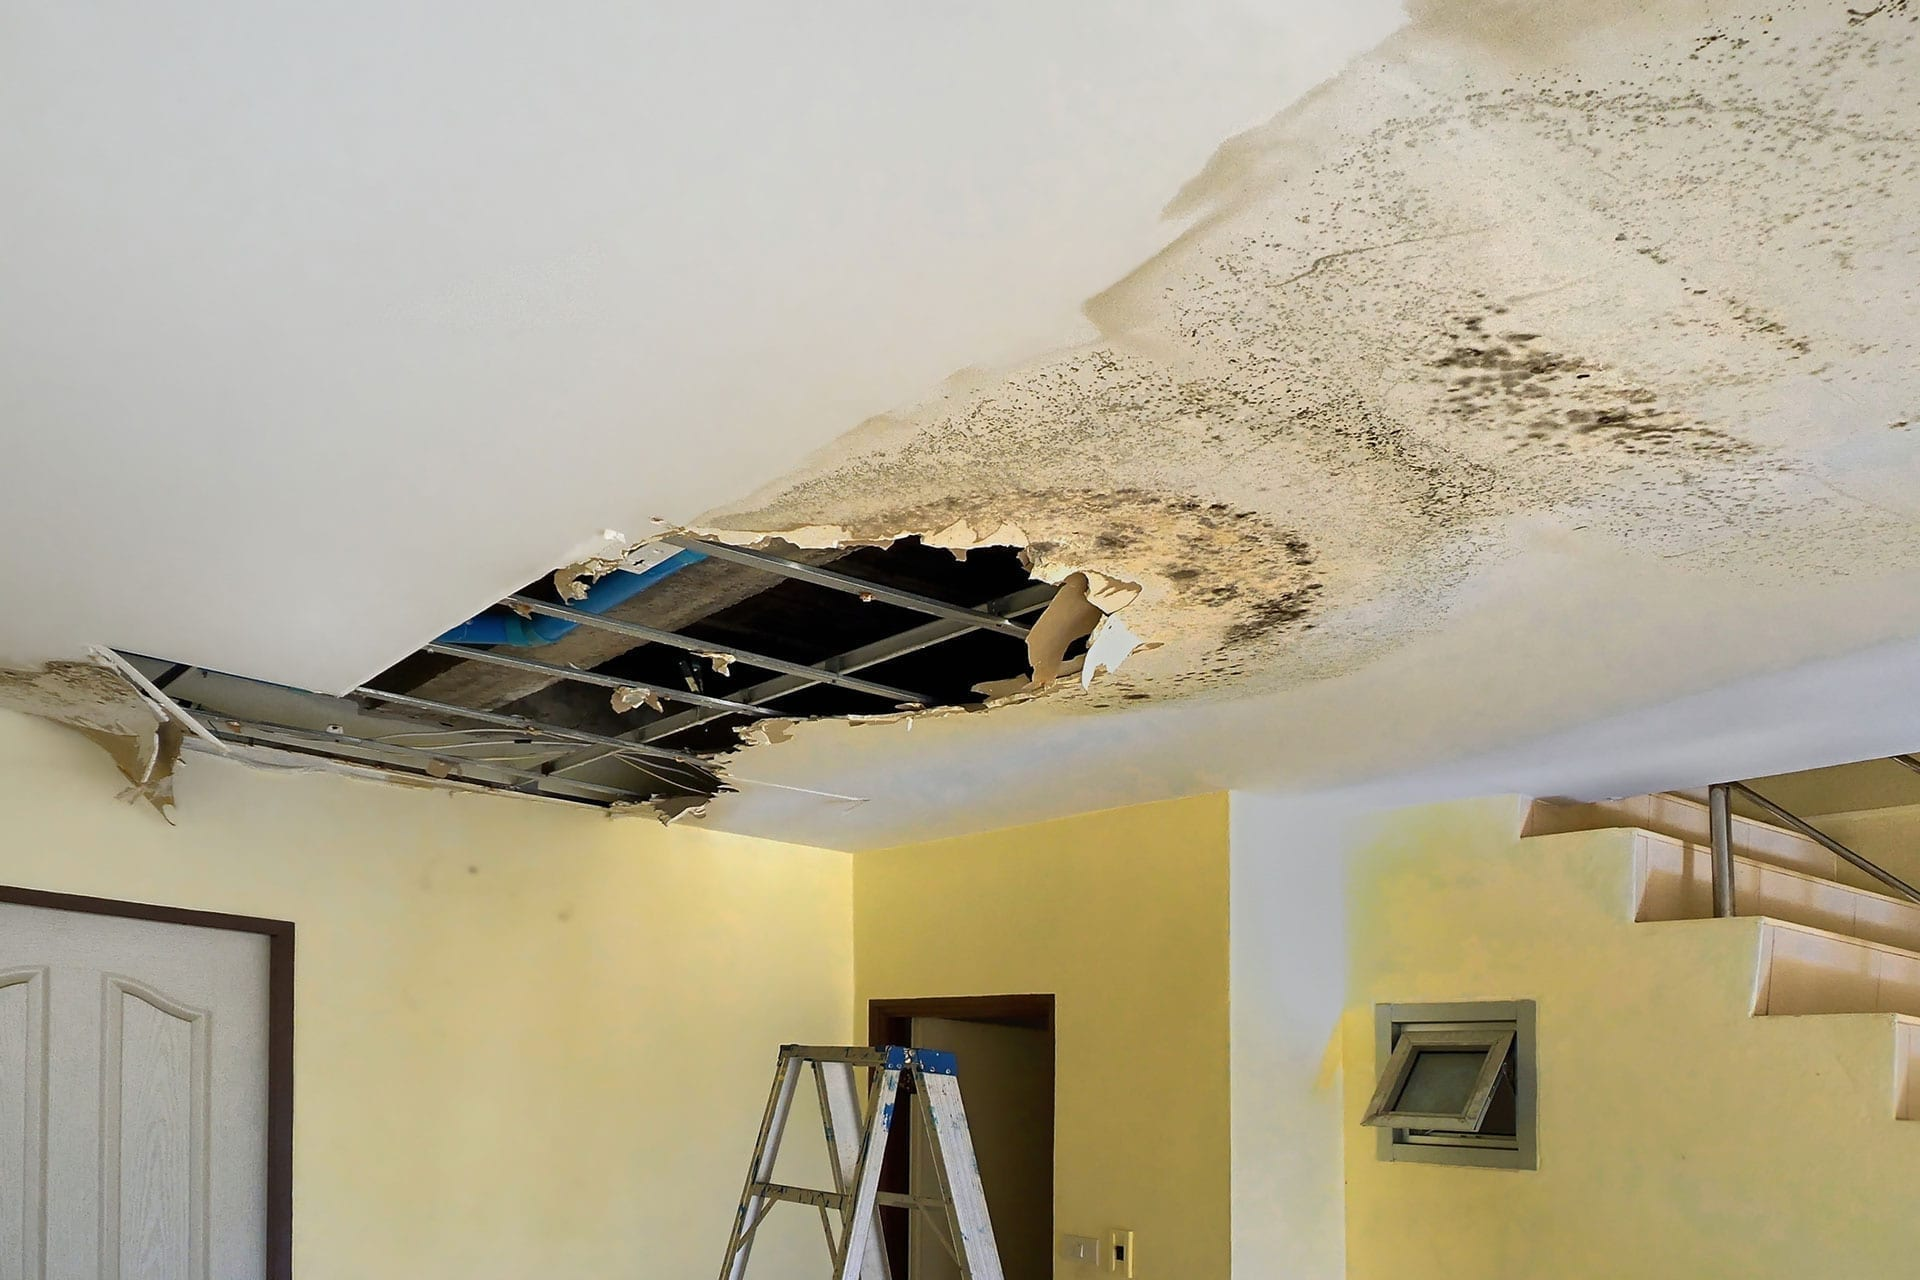 Ceiling Water Damage Repair in Kansas City